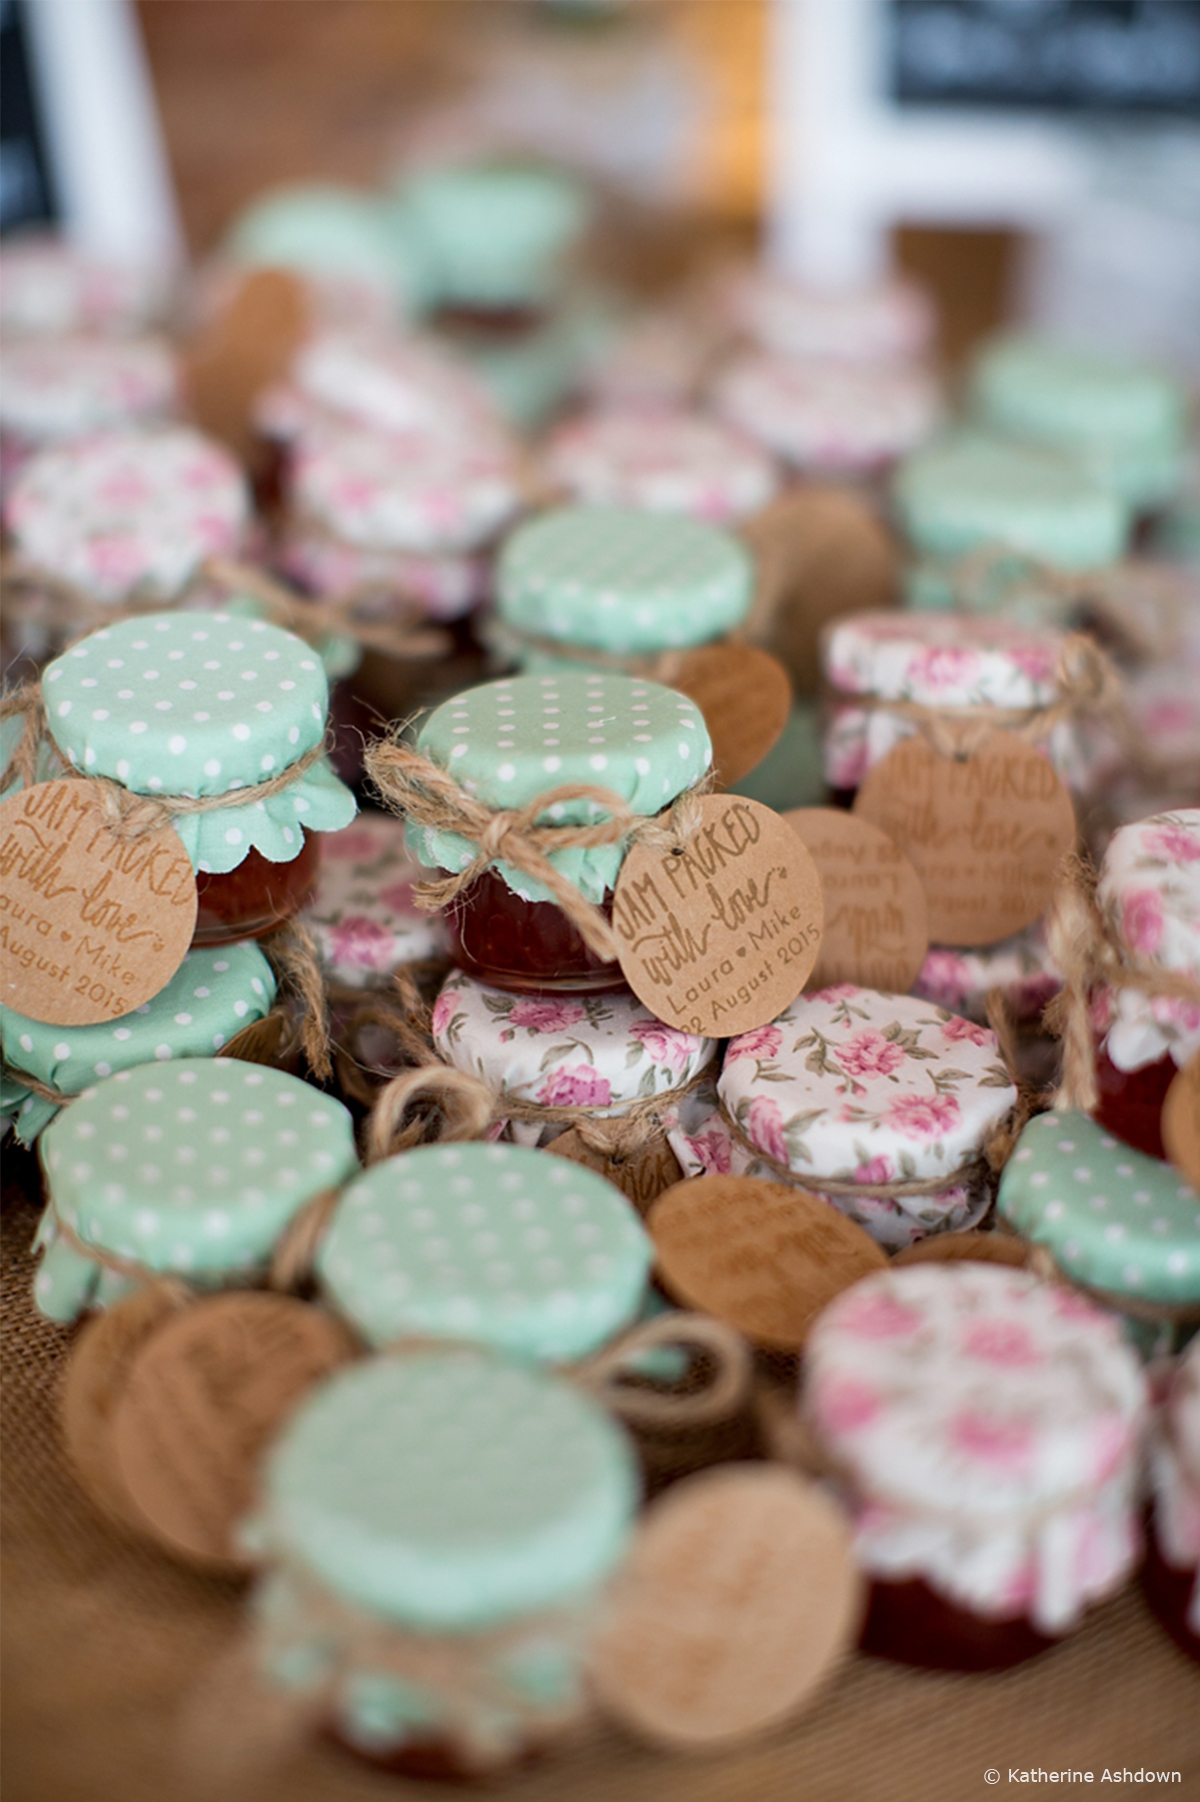 10 of our Favourite Wedding Favours 2016 - Preserves